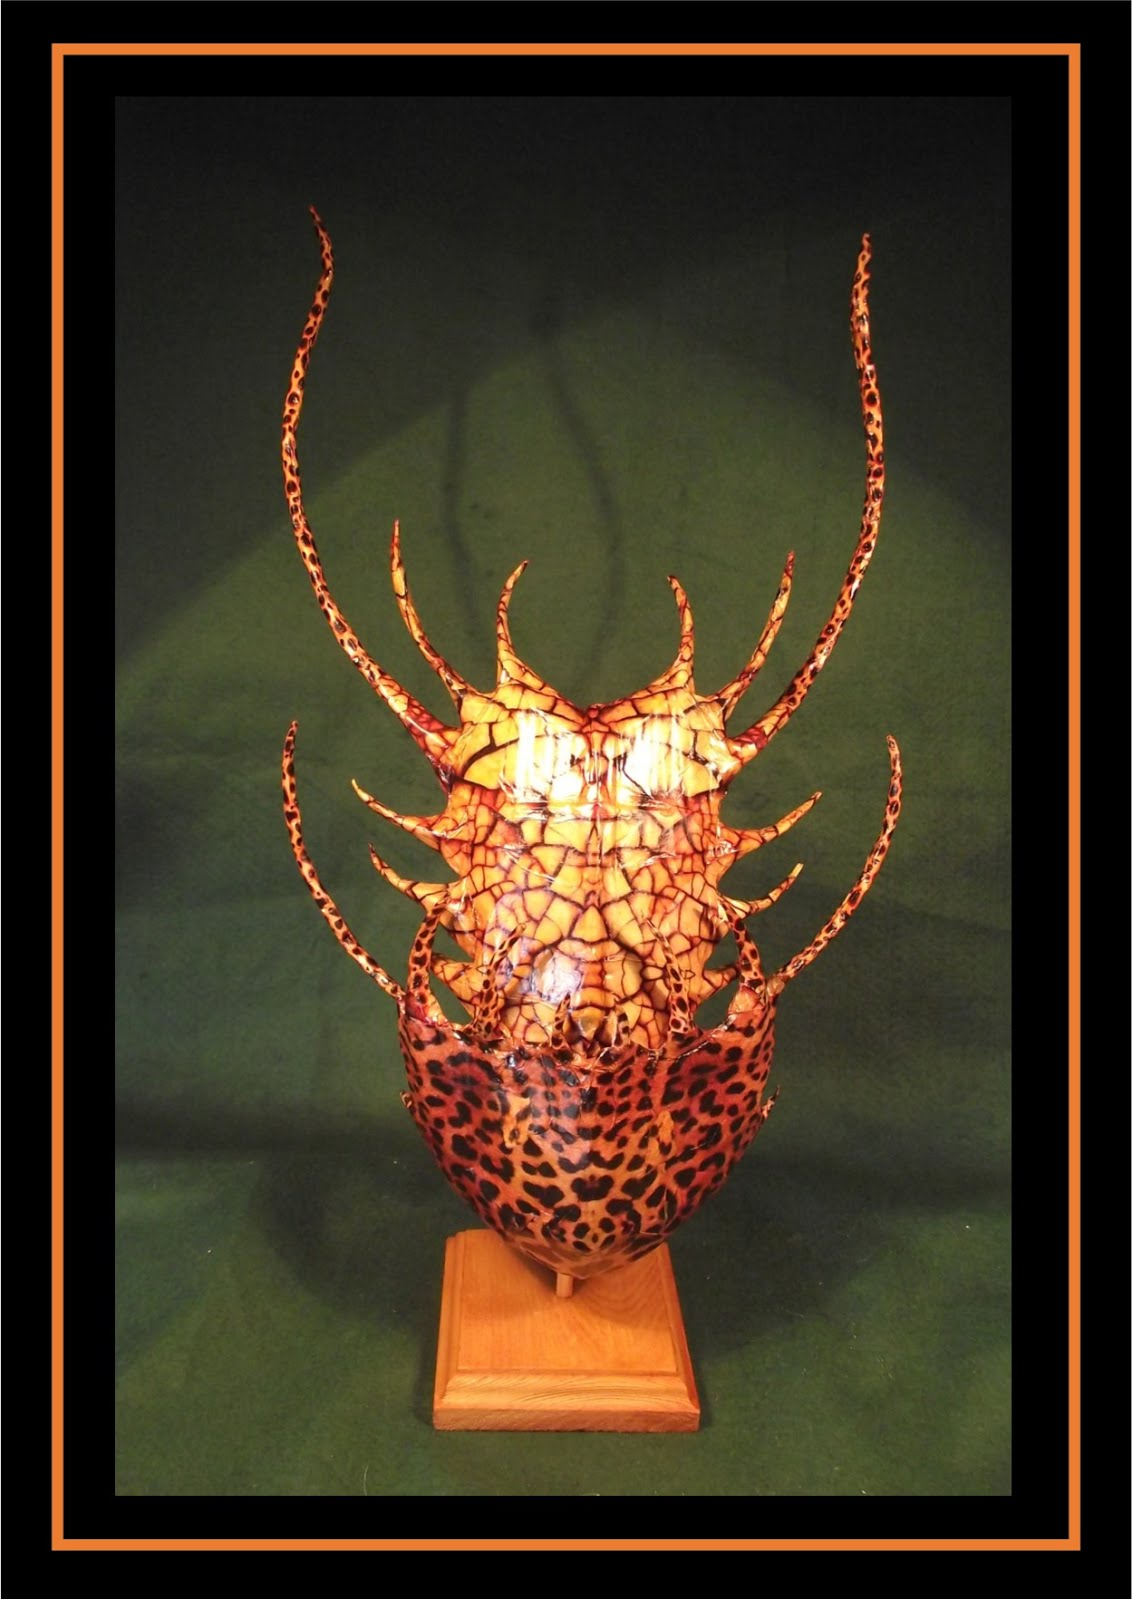 Trilobite Sculpture by Kuriology